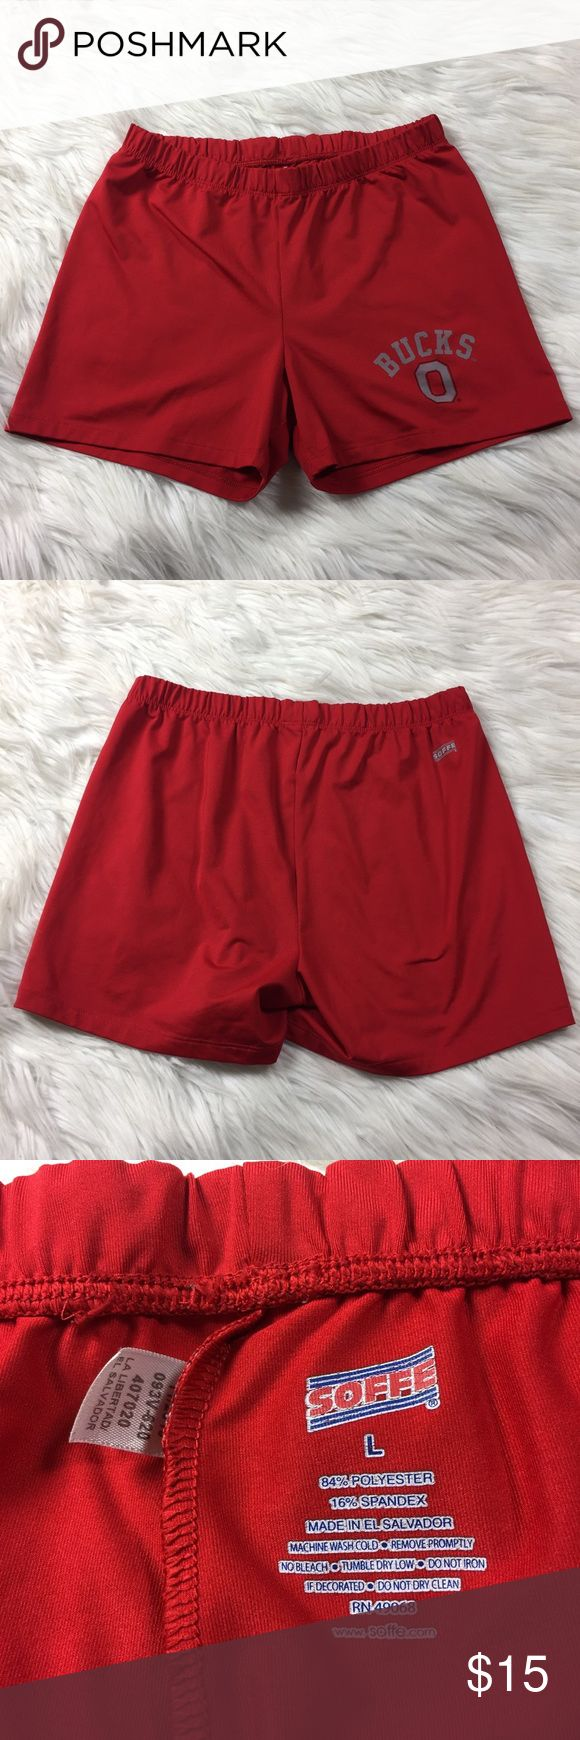 """•• The Ohio State • Red Bucks Soffee Shorts Great little Soffe shorts. Only worn a handful of times. These are perfect for running, cycling, working out, cheerleading, tennis, or any activity you need range of motion.  Measurements(approx.) Length: 10.5"""" (Fully elastic waist) Waist: 11.5""""  Comes from a smoke free pet free home. (LLR0-0133) Soffe Shorts"""